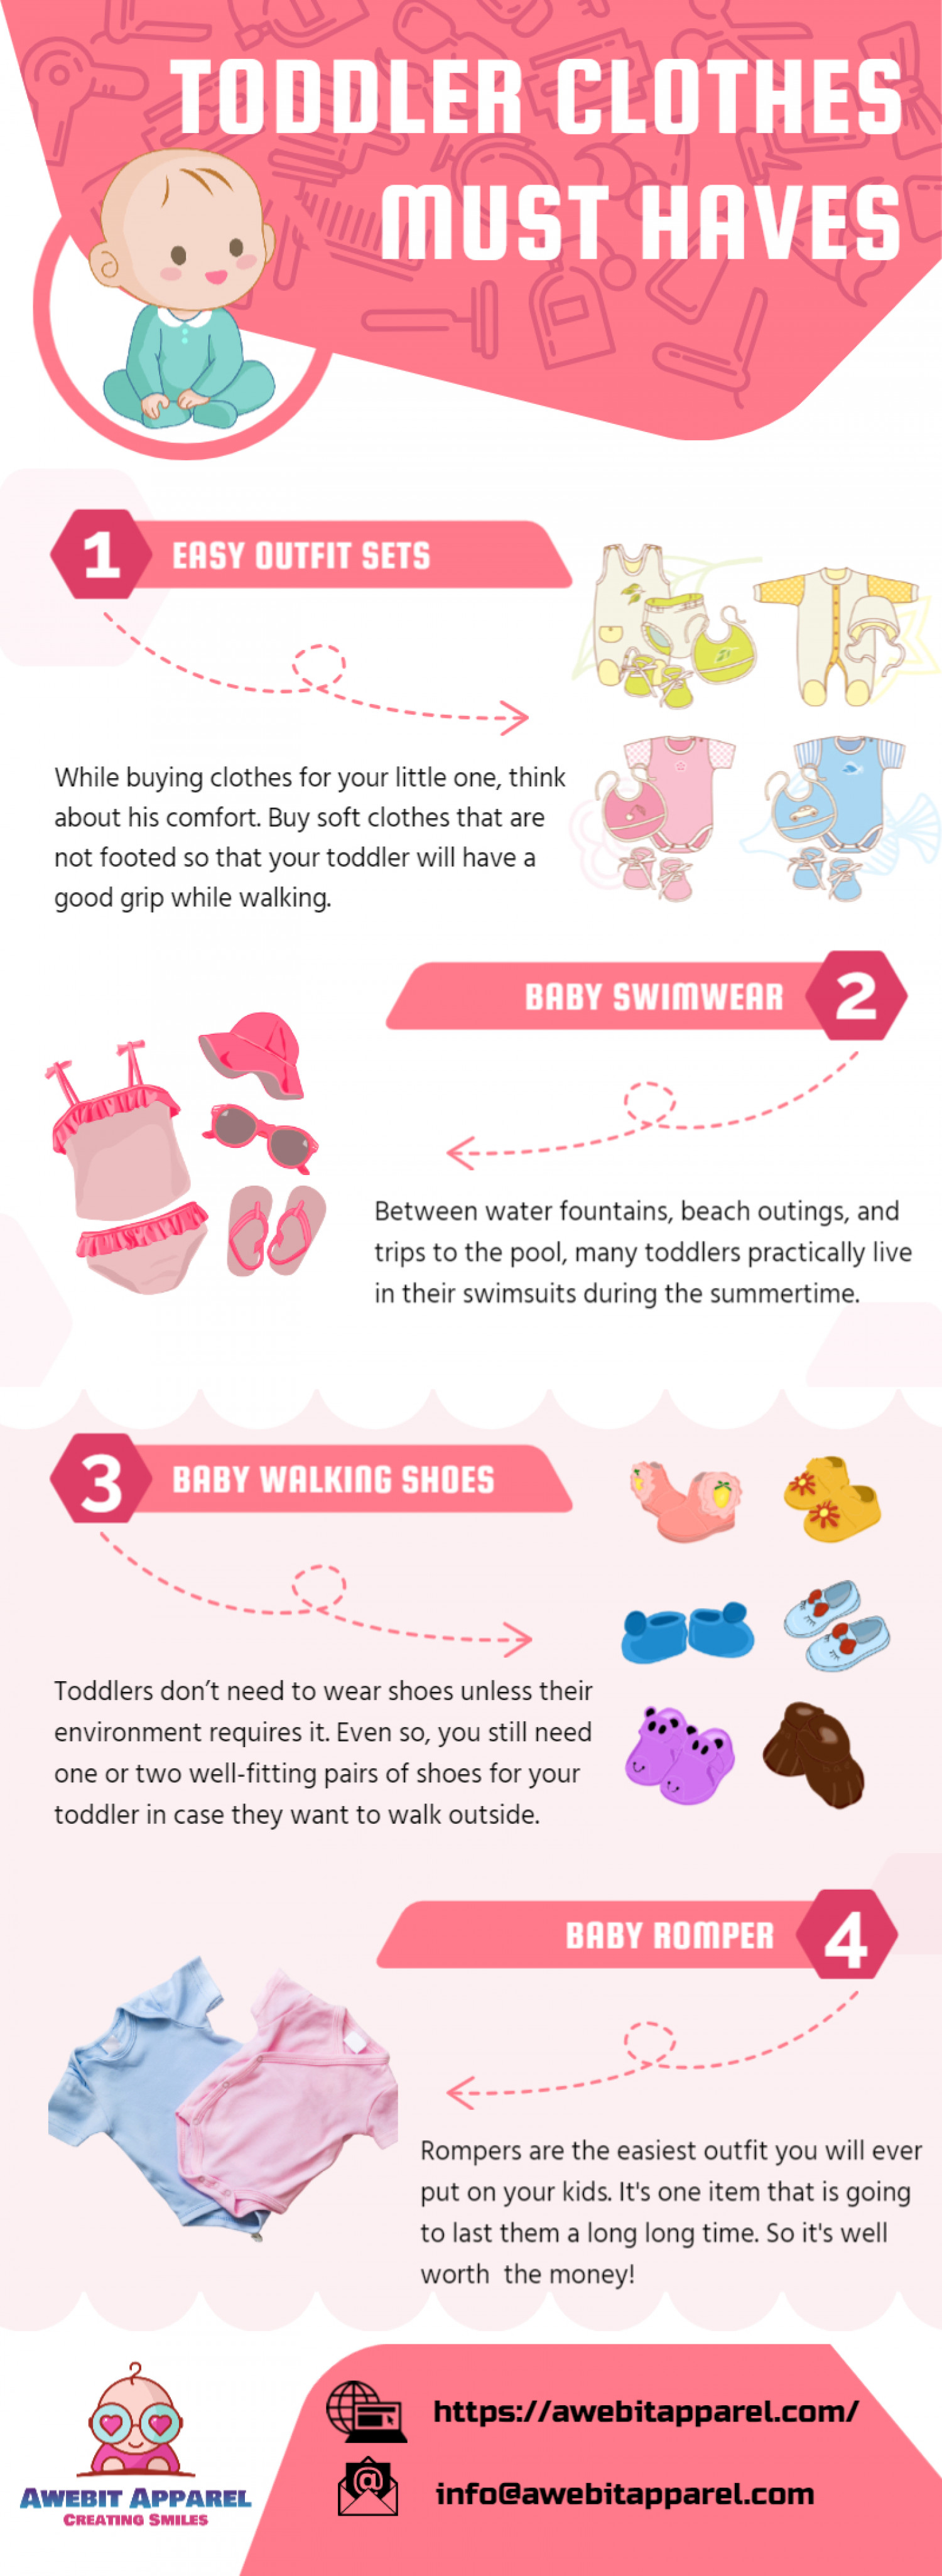 Toddler Clothes Must Haves Infographic